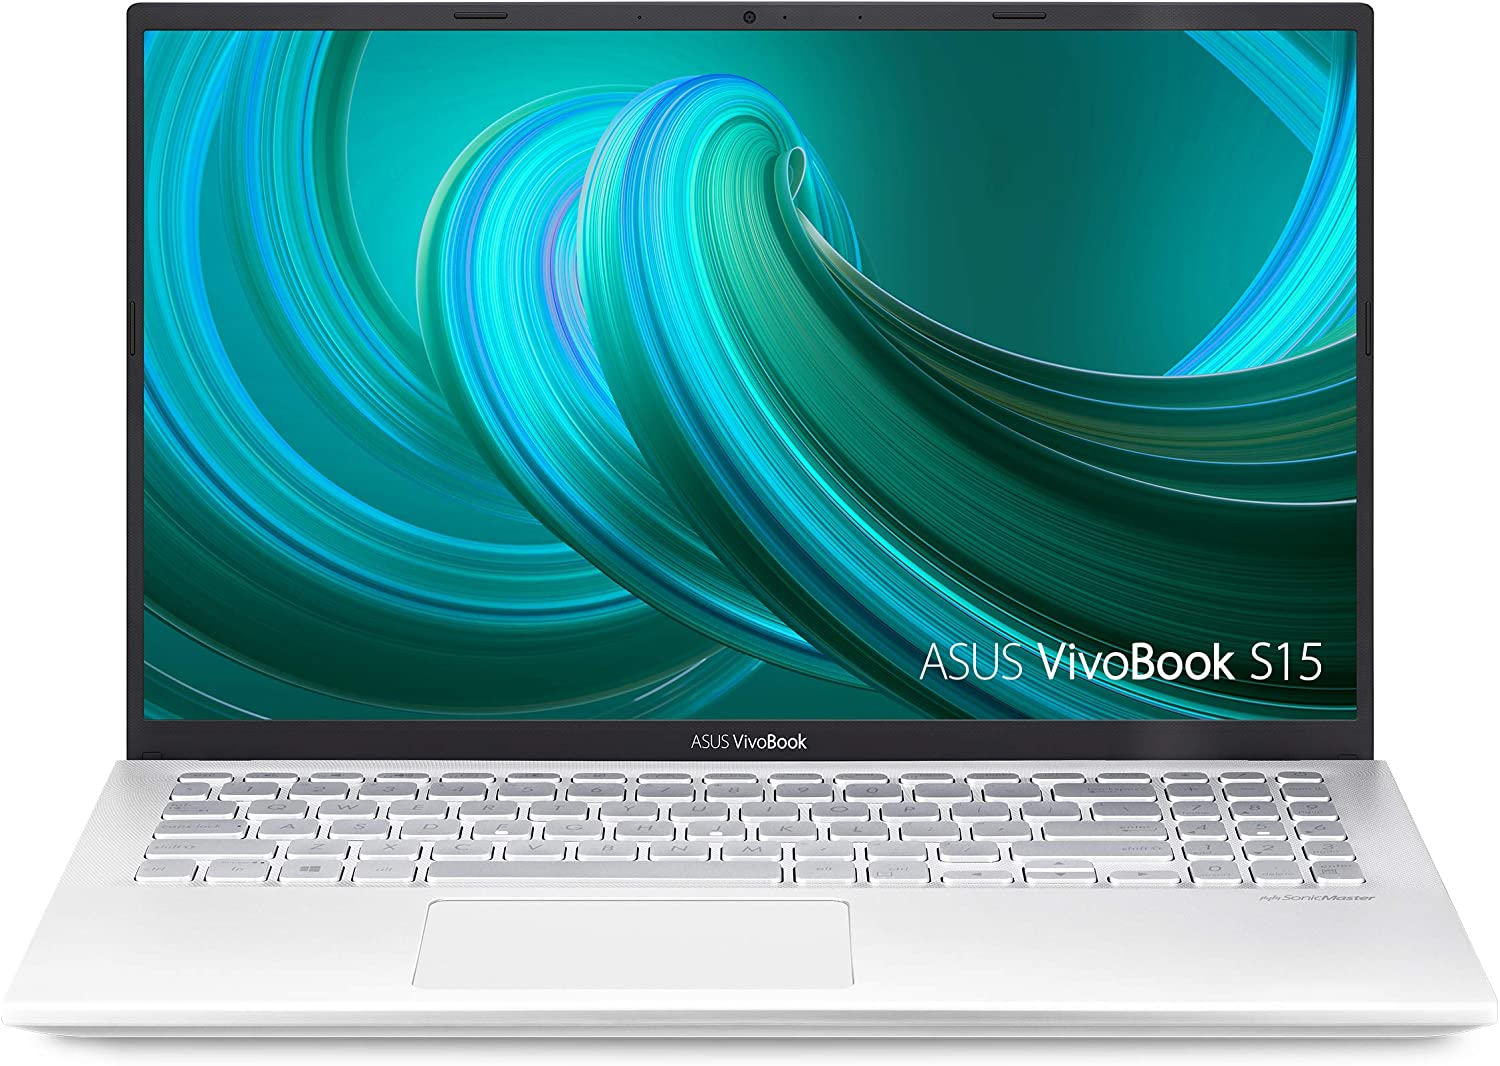 "Asus Vivobook S15 S512 Thin and Light 15.6"" FHD, Intel Core I5-8265U CPU, 8GB RAM, 256GB PCIe Nvme SSD, NVIDIA GeForce MX250, Windows 10 Home, S512FL-PB52, Silver-Metal"